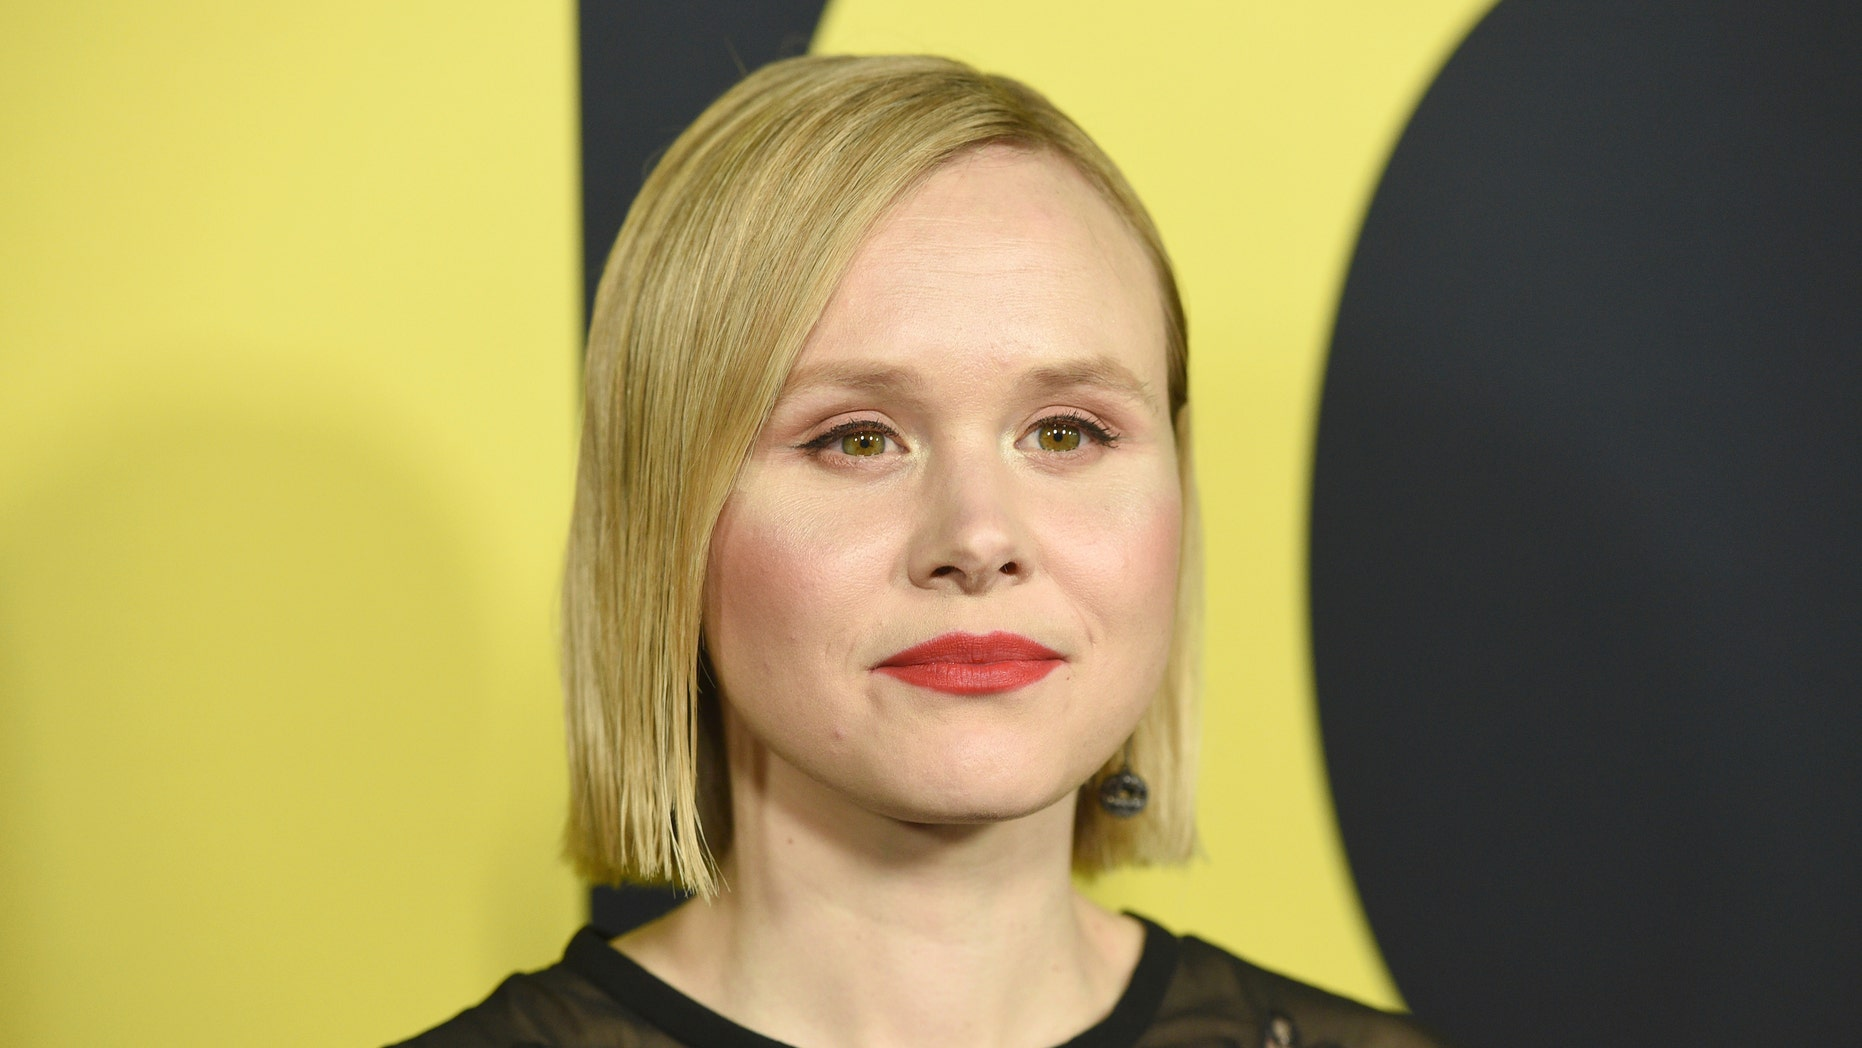 Alison Pill Fotos vice' star alison pill says 'conservatives would write off